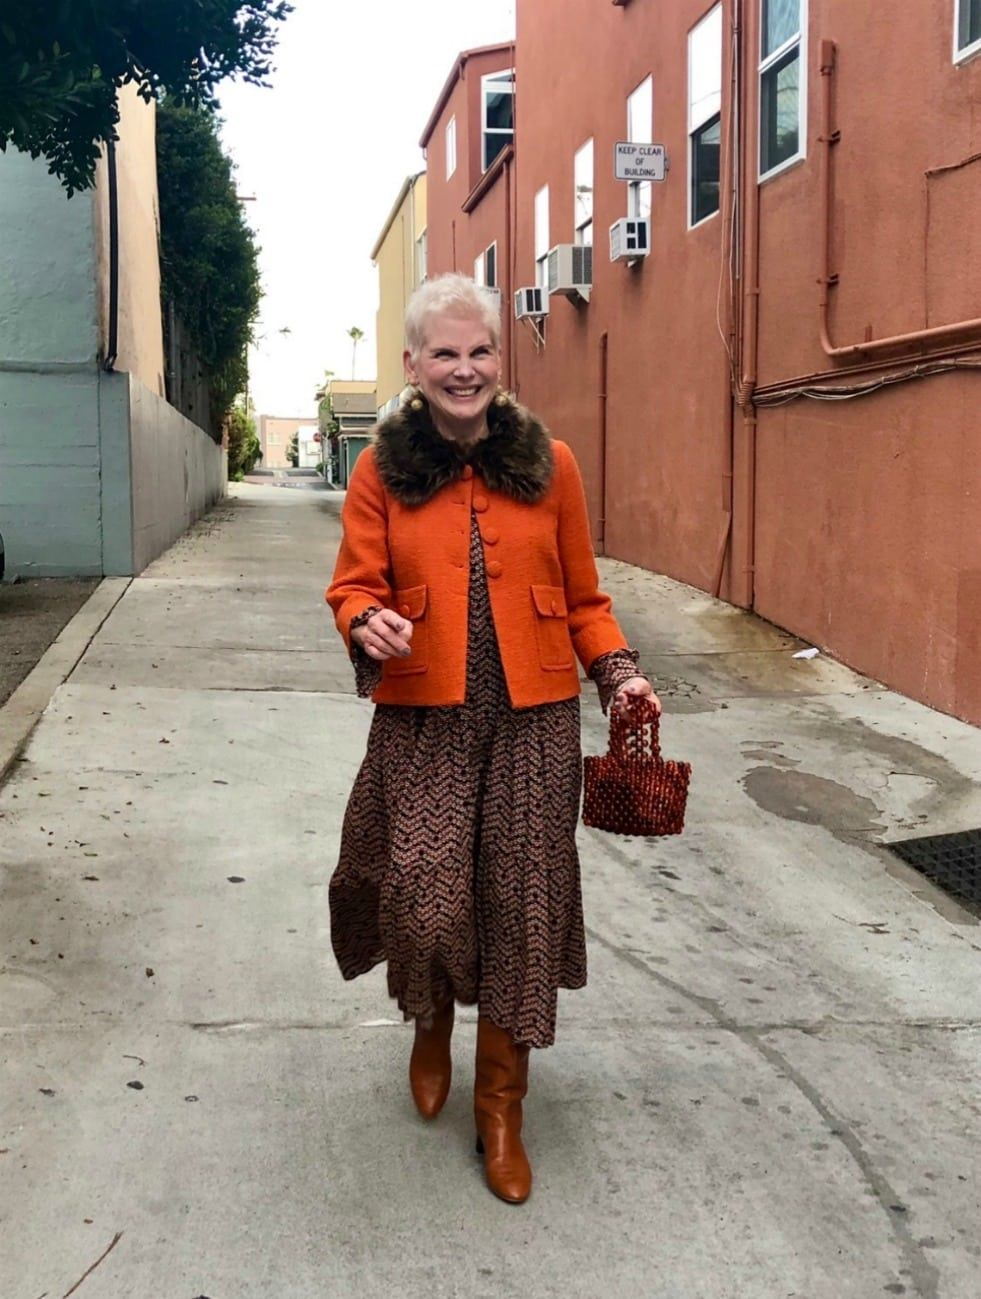 woman in brown skirt and orange jacket